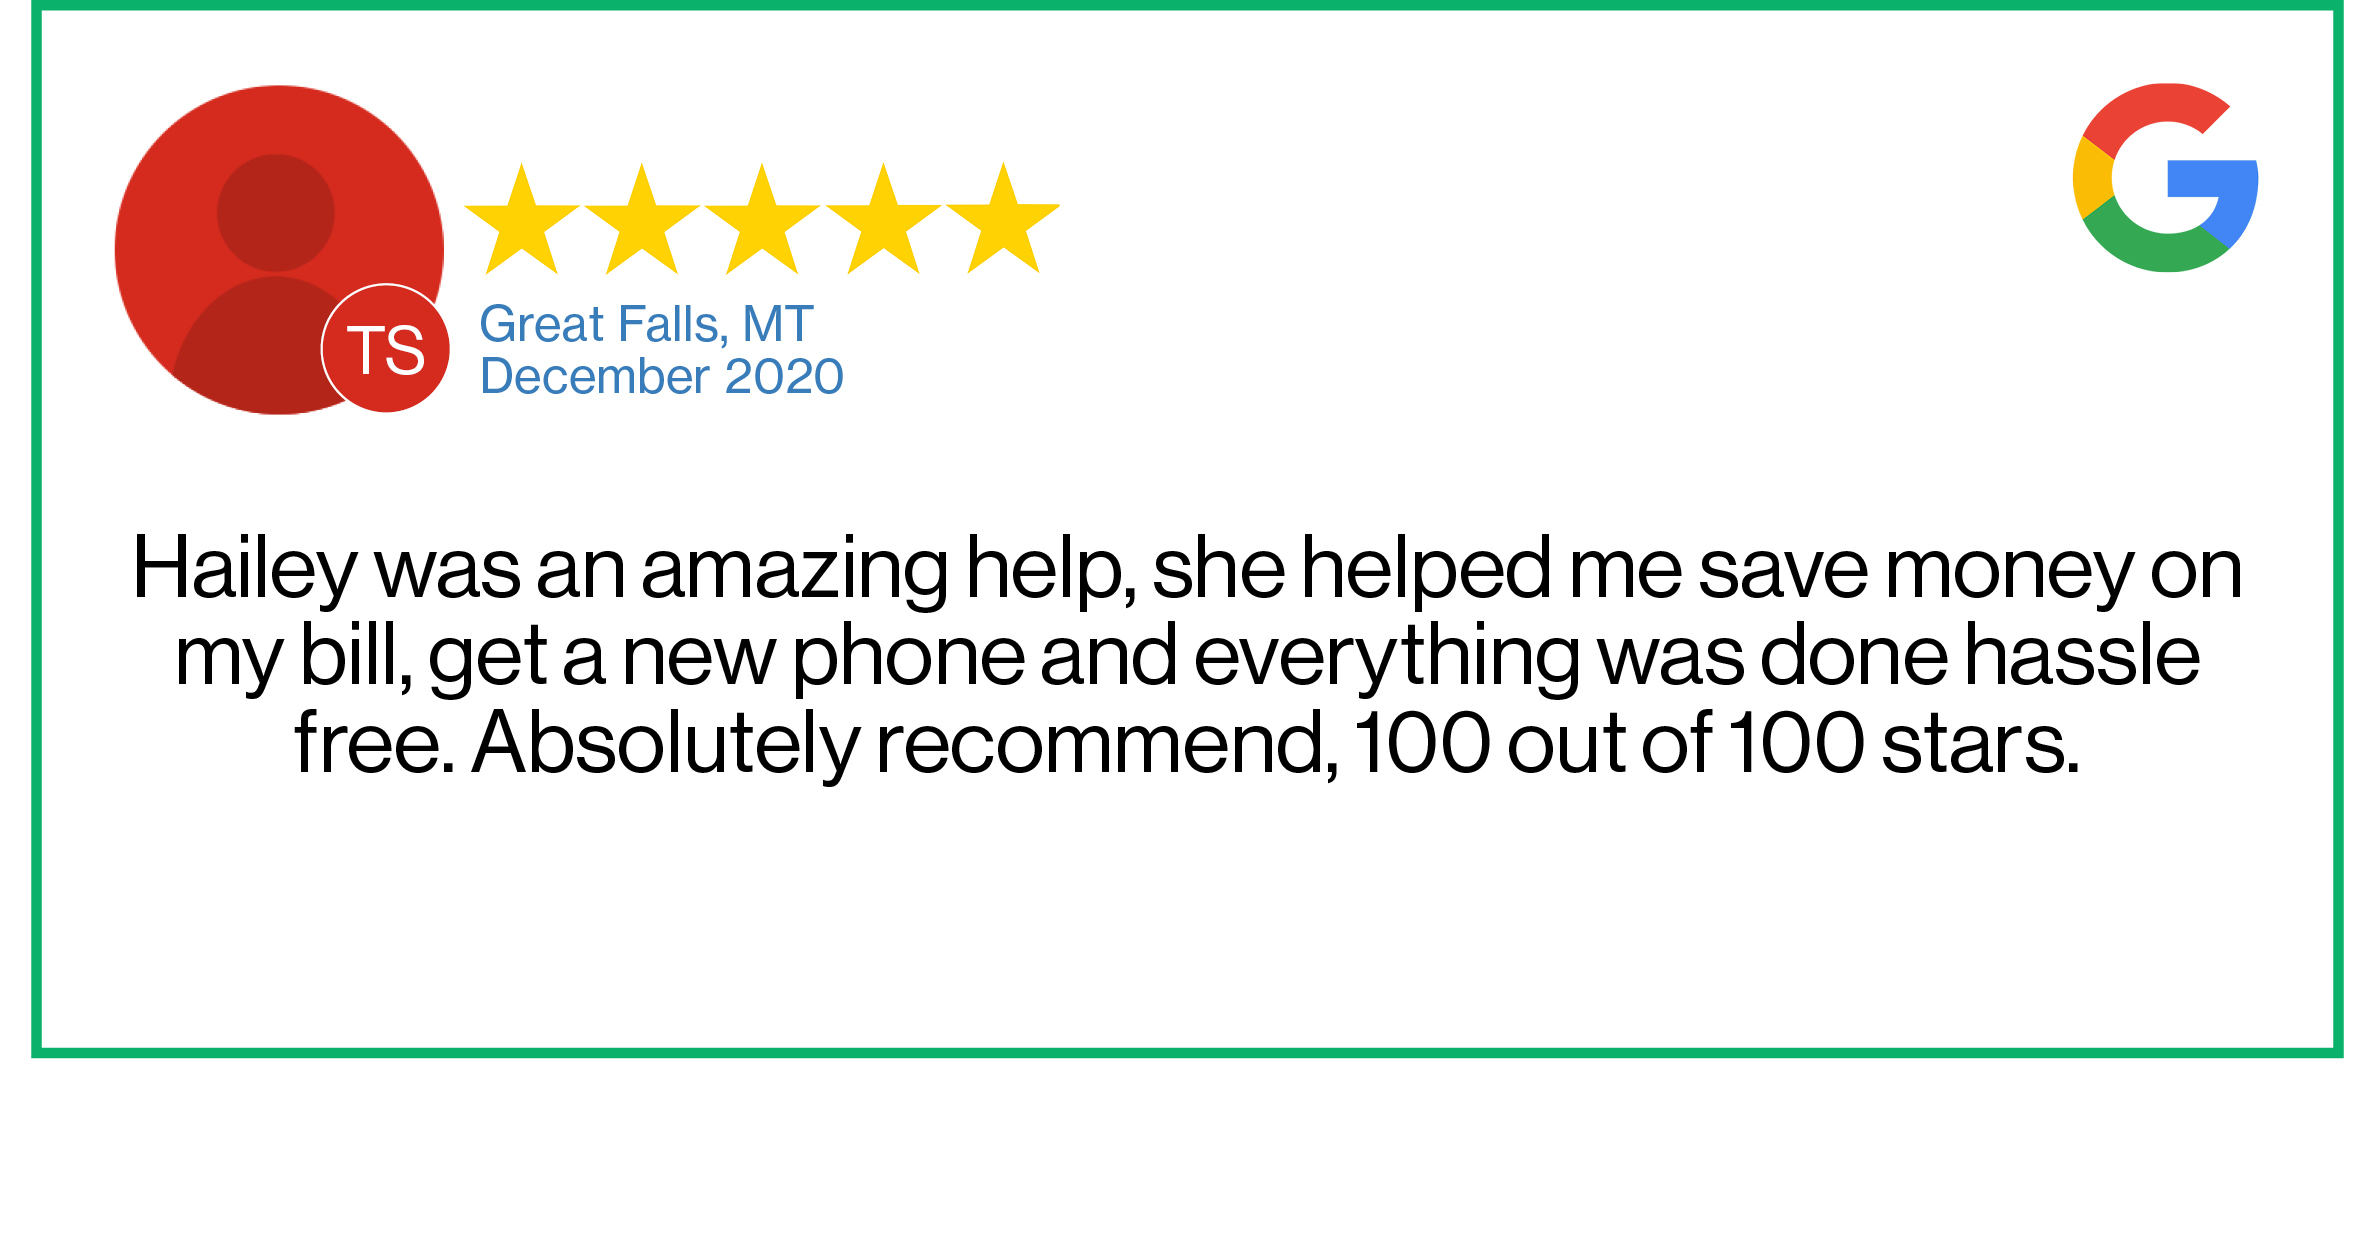 Check out this recent customer review about the Verizon Cellular Plus store in Great Falls, MT